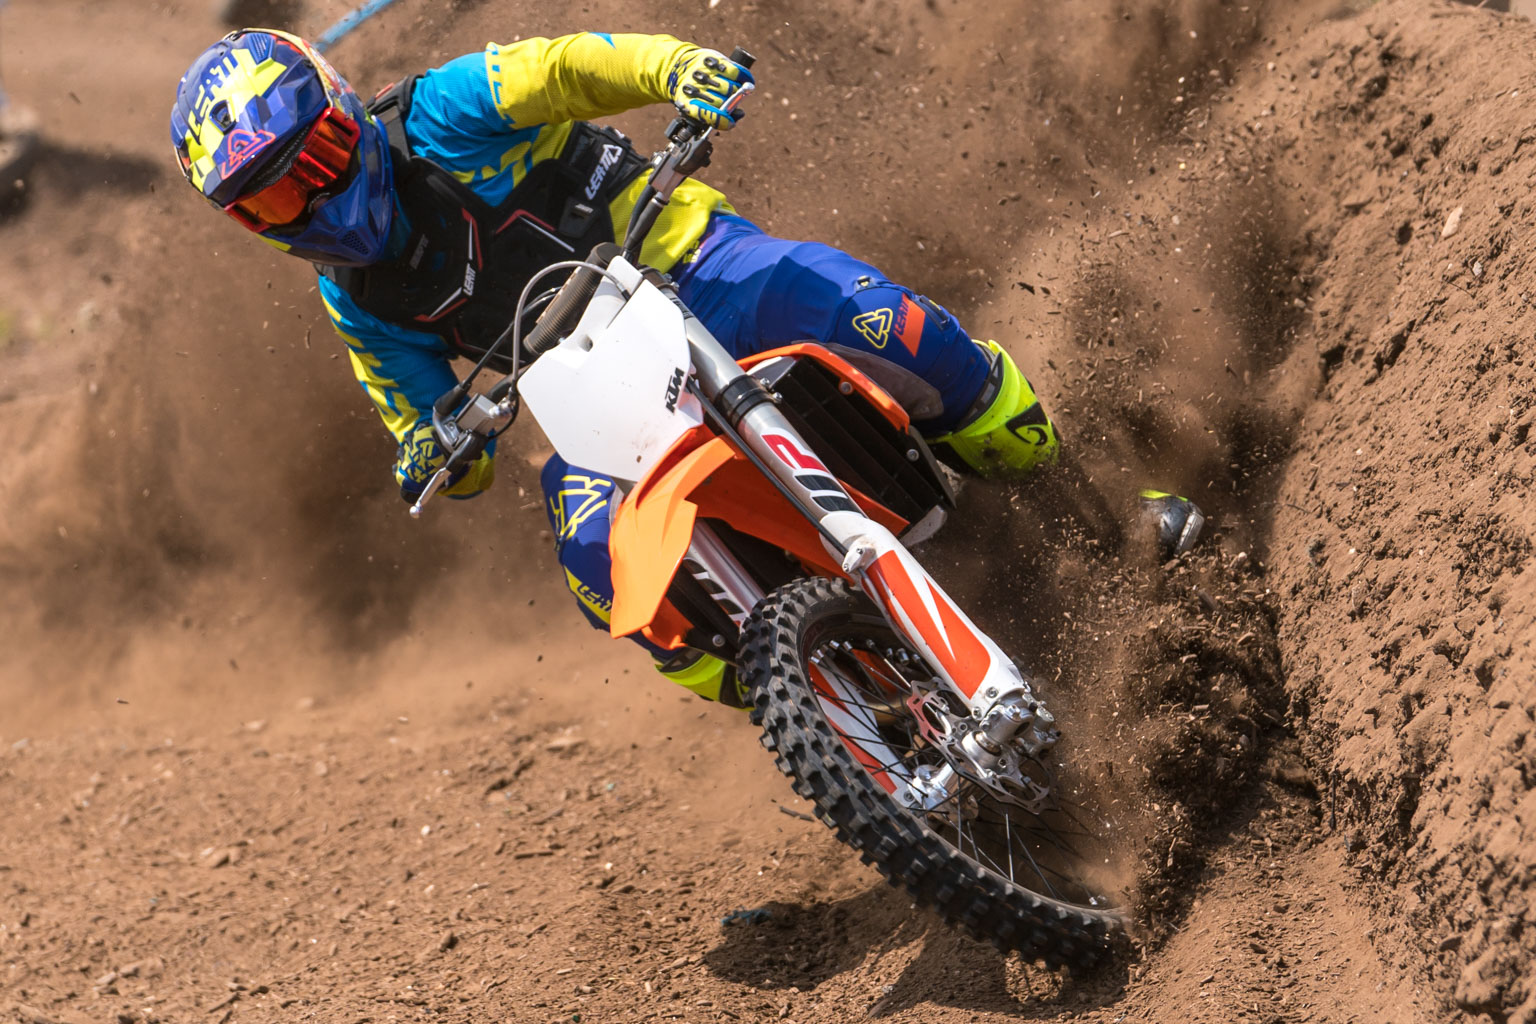 You can't go wrong with a 2018 KTM - in any class